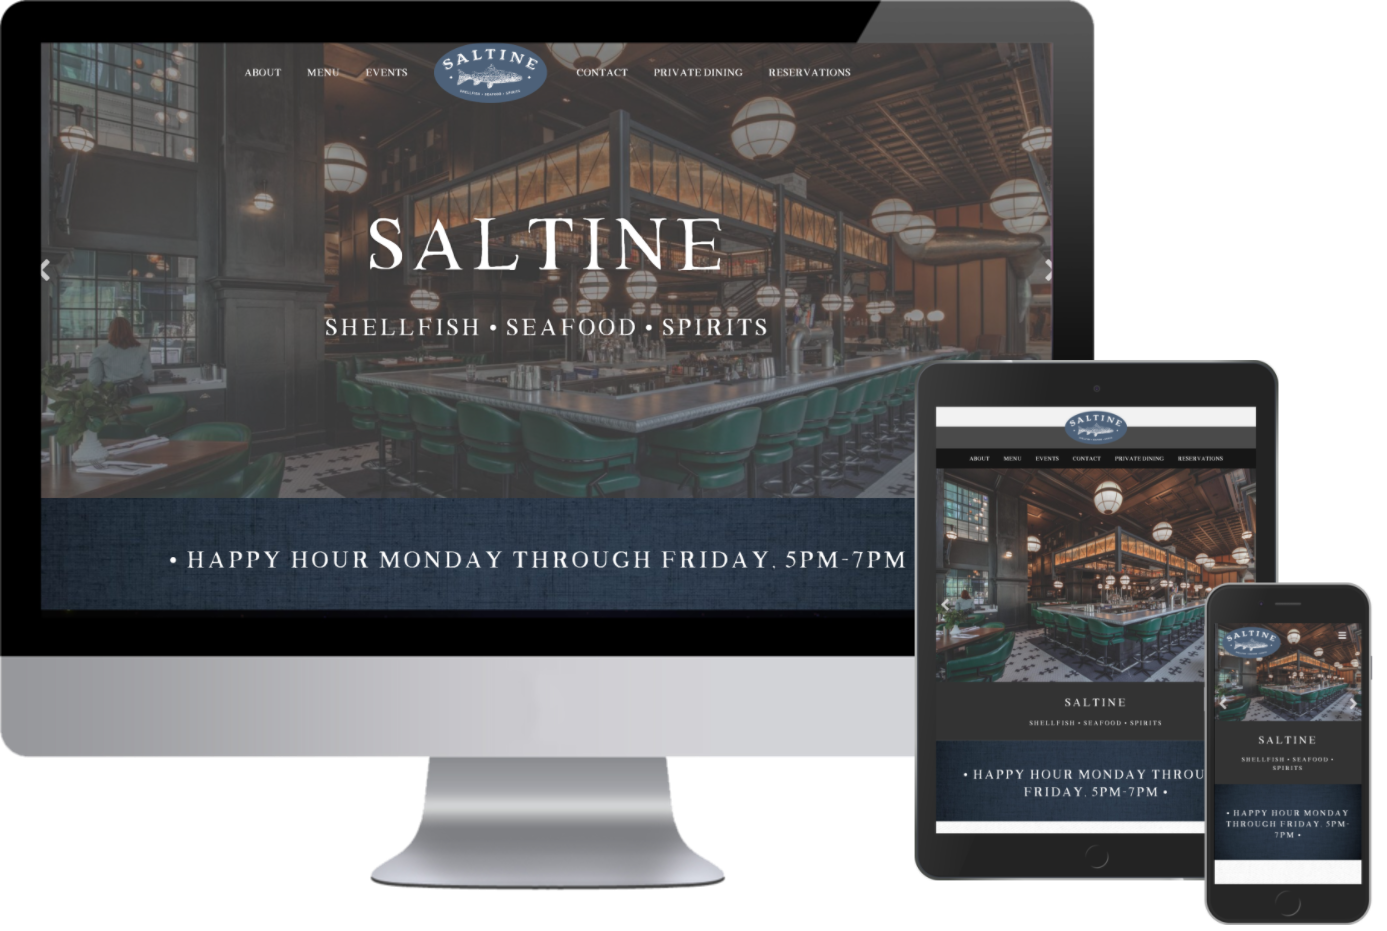 Saltine now has a Responsive Designed Website made by Greenstone Media